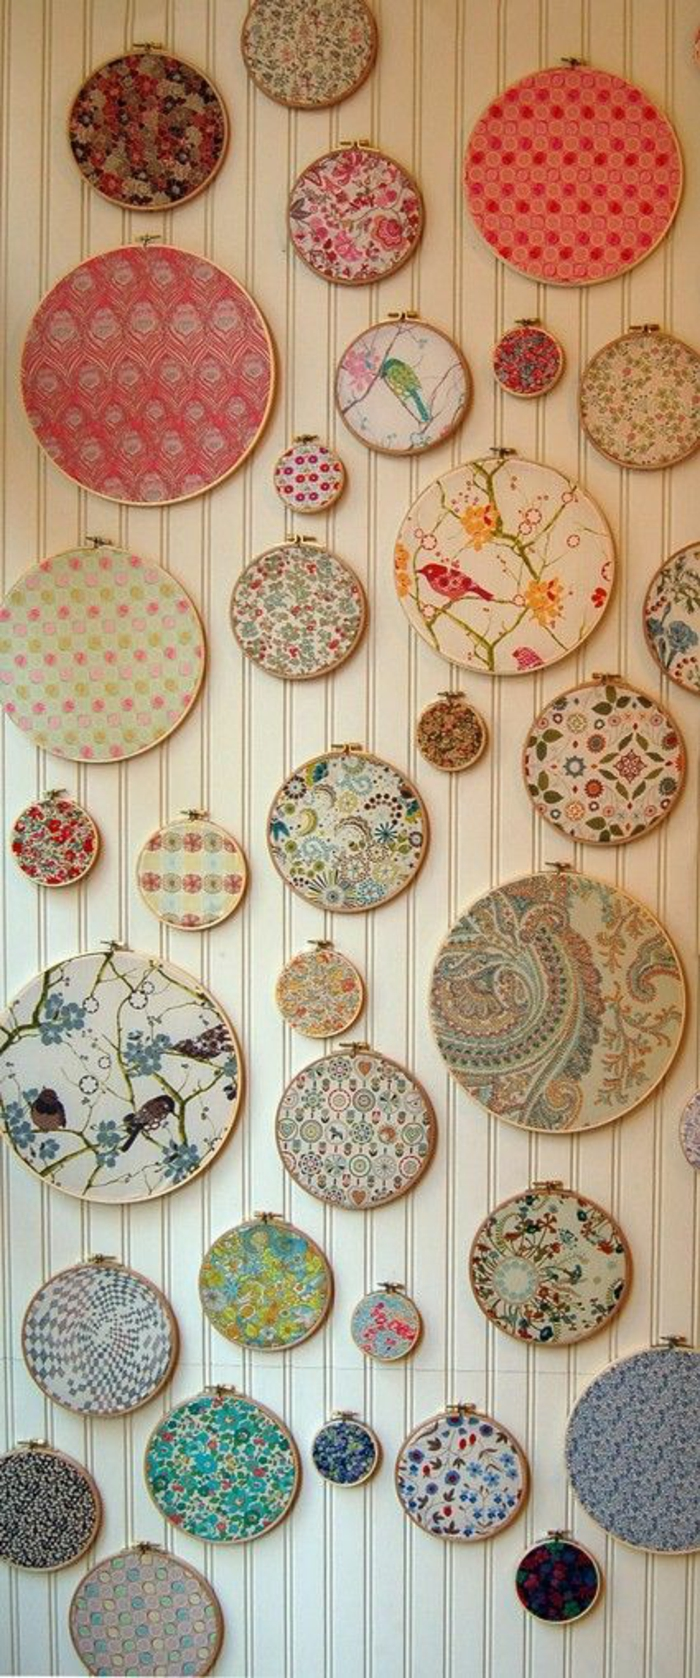 wall ideas wall decoration string art wall design broderie embroidery work babble